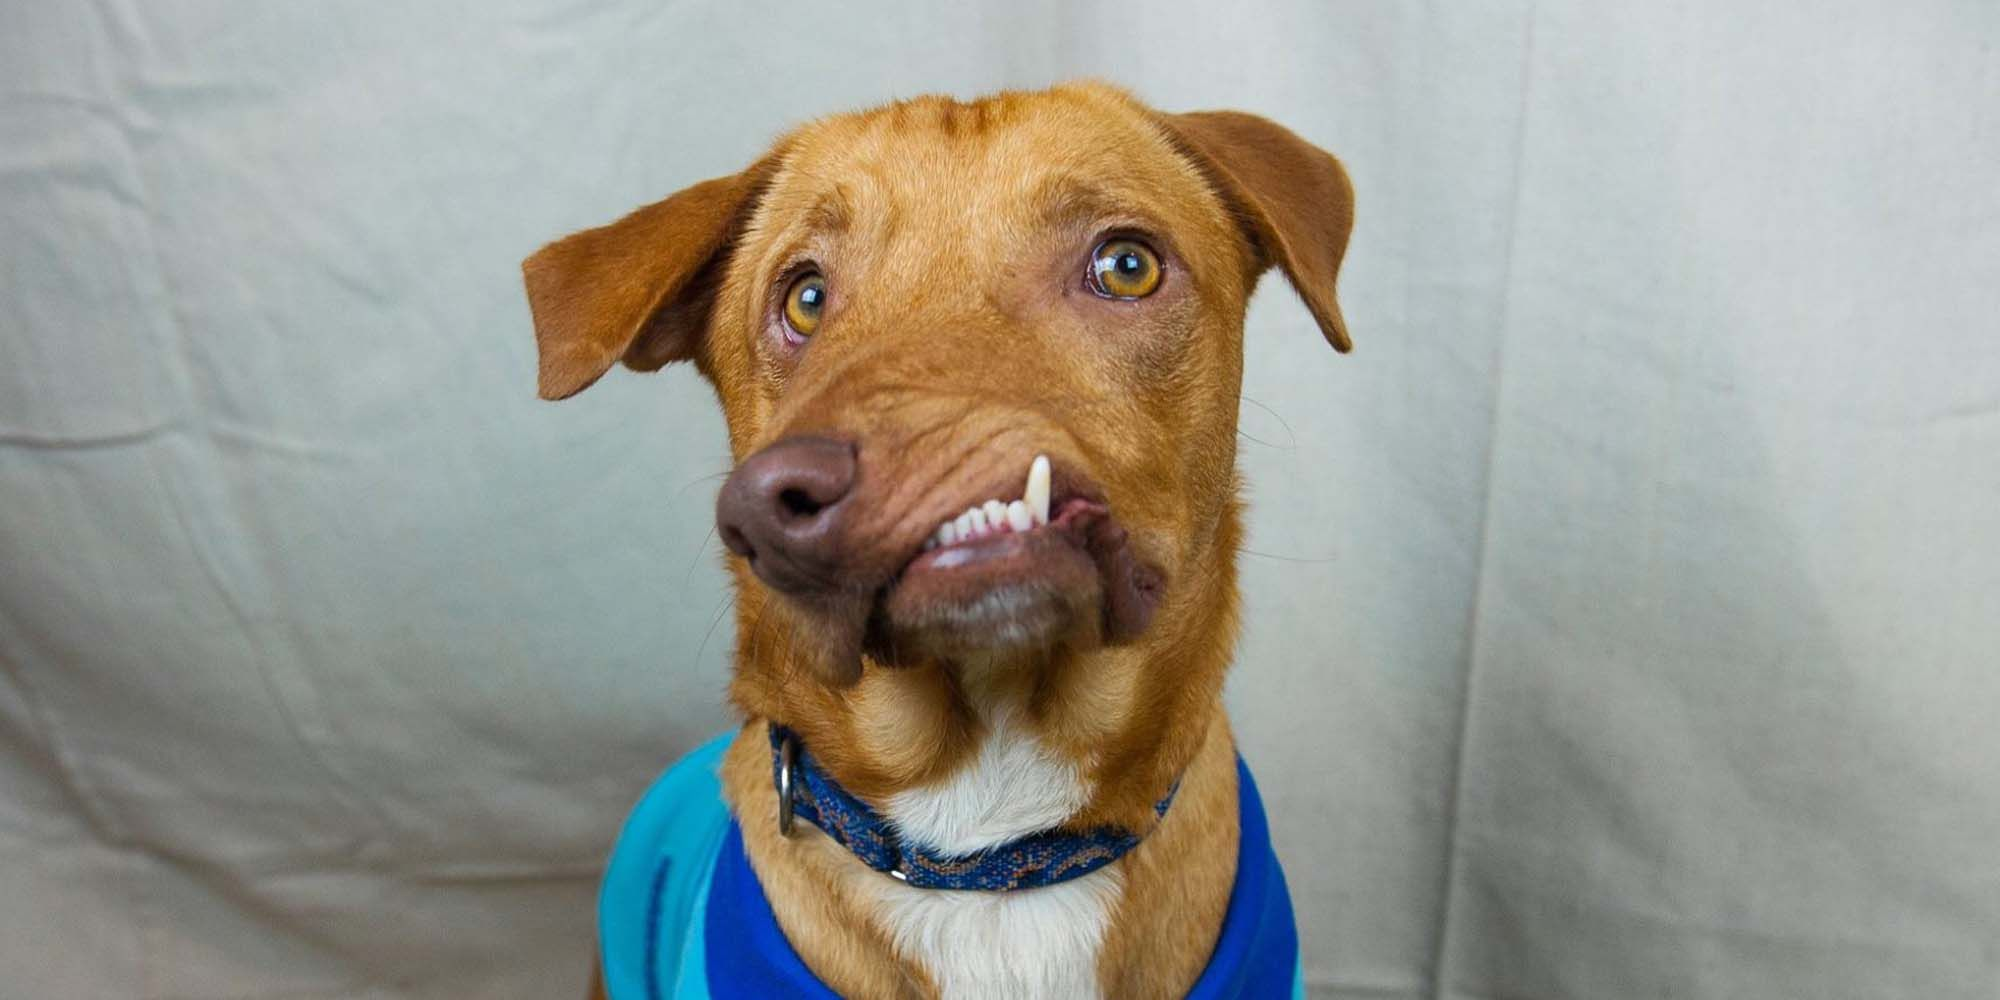 this sweet dog was abandoned due to his deformed face